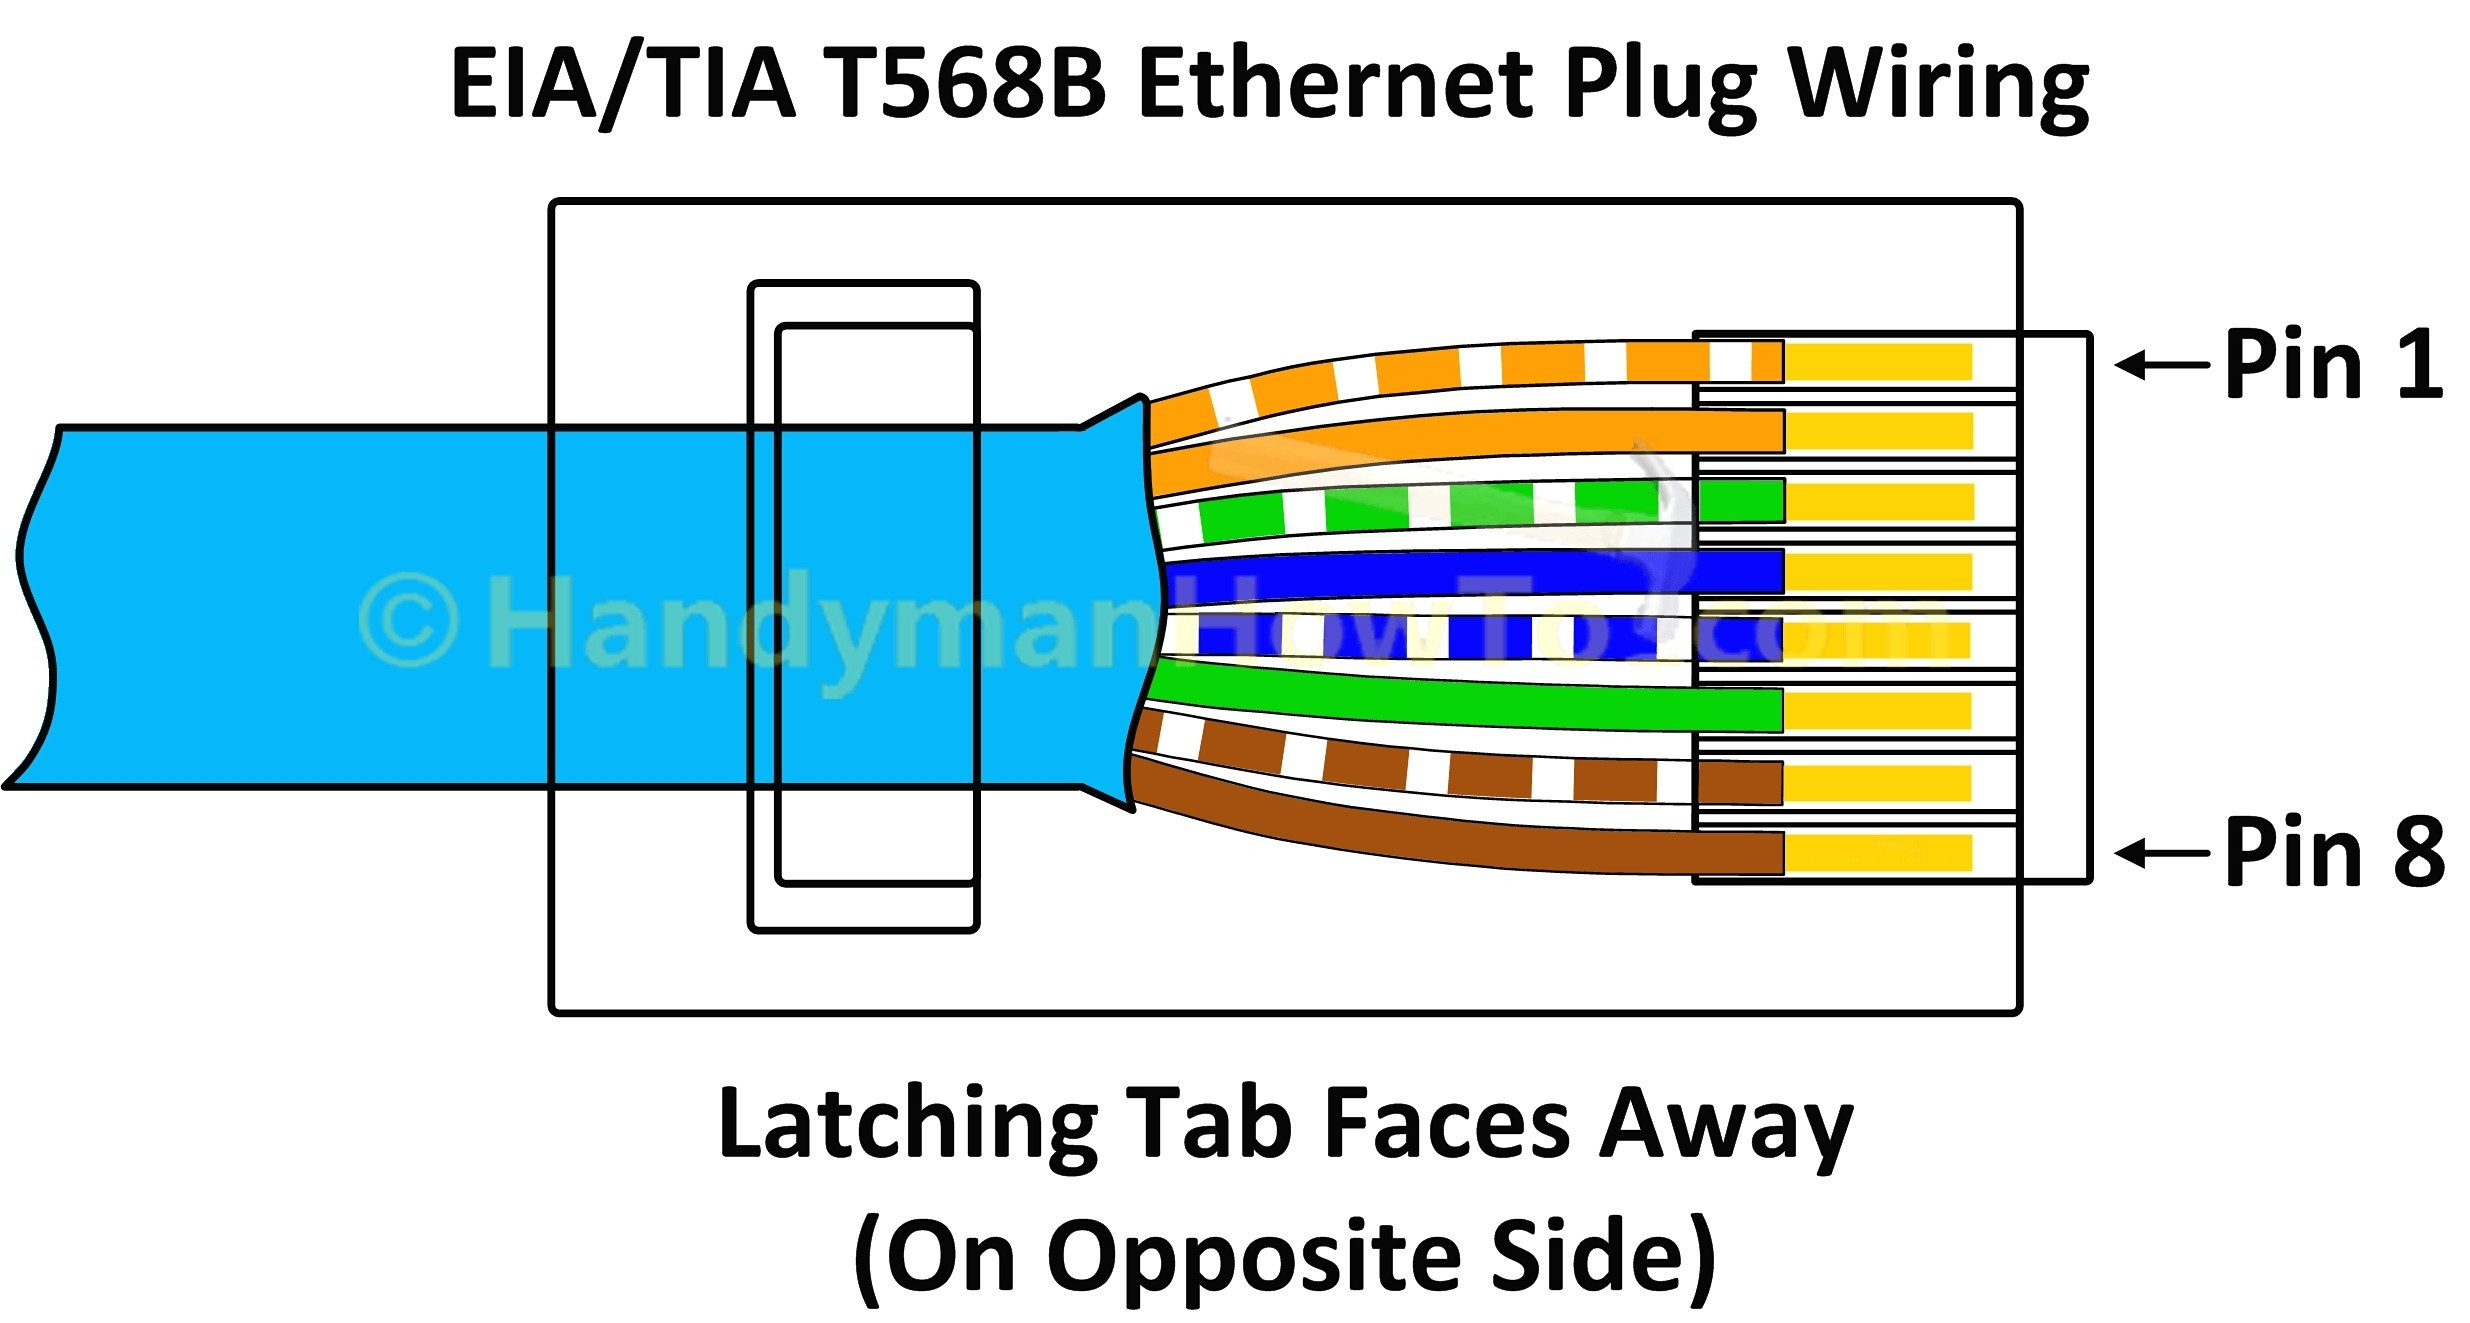 cat 5 wiring diagram pdf Download-Cat5 B Wiring Diagram Best 7-g